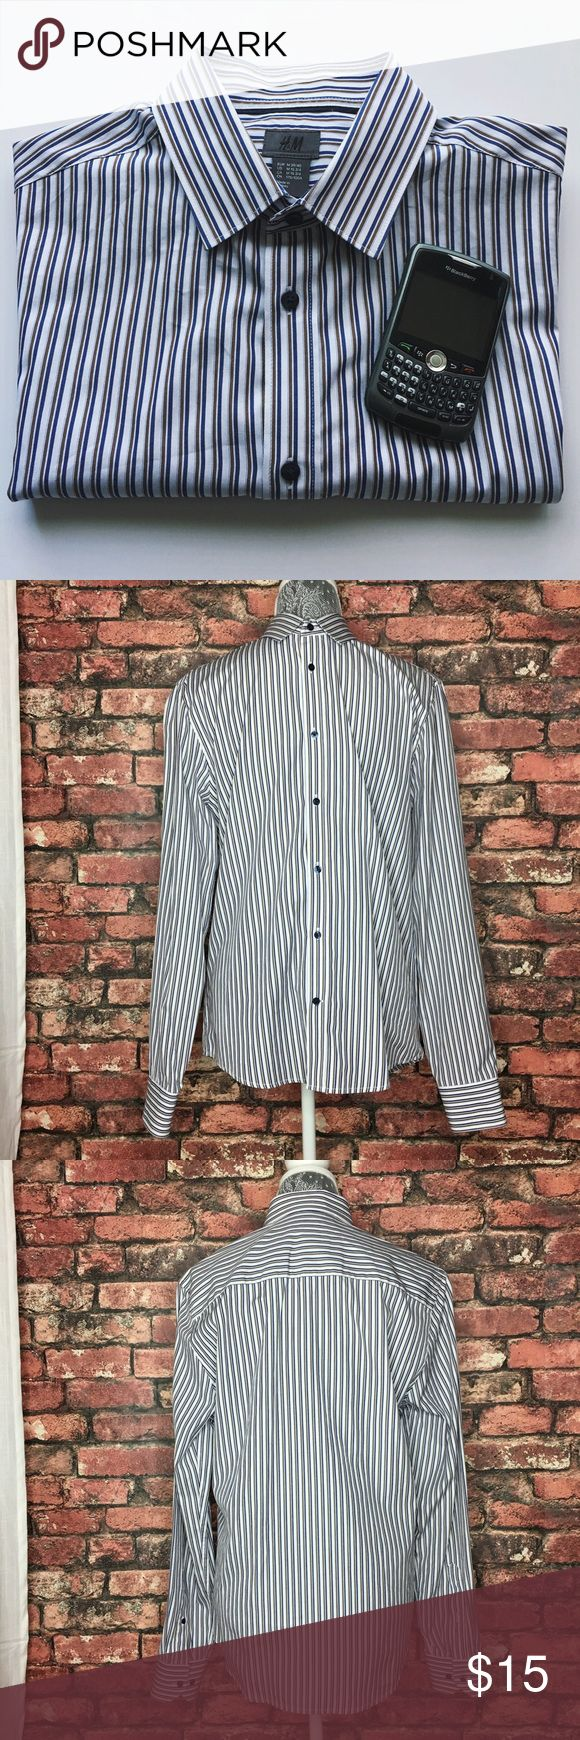 H&M 100% Cotton Button Down Shirt The perfect white, blue and brown button down shirt for work or for a causal night out with friends or a date. In excellent condition. Like new.  100% Cotton Made in Turkey  Neck 15 3/4in Length 27in Chest 21in Sleeves 26.5in H&M Shirts Dress Shirts